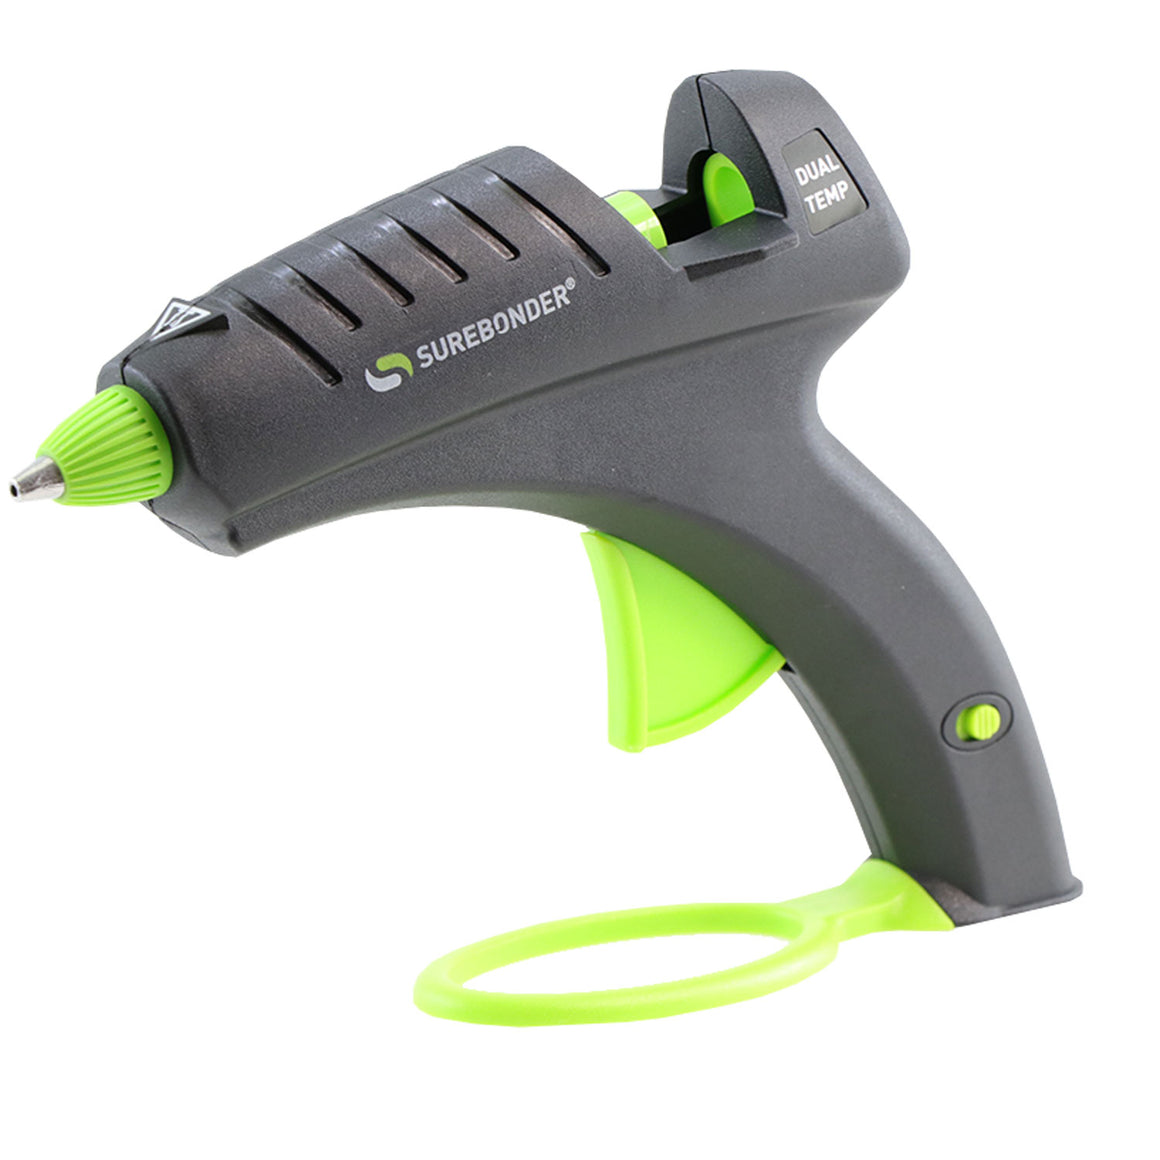 CDT-270F Specialty Series 40 Watt Full Size Cordless/Corded Dual Temp Glue Gun - Surebonder